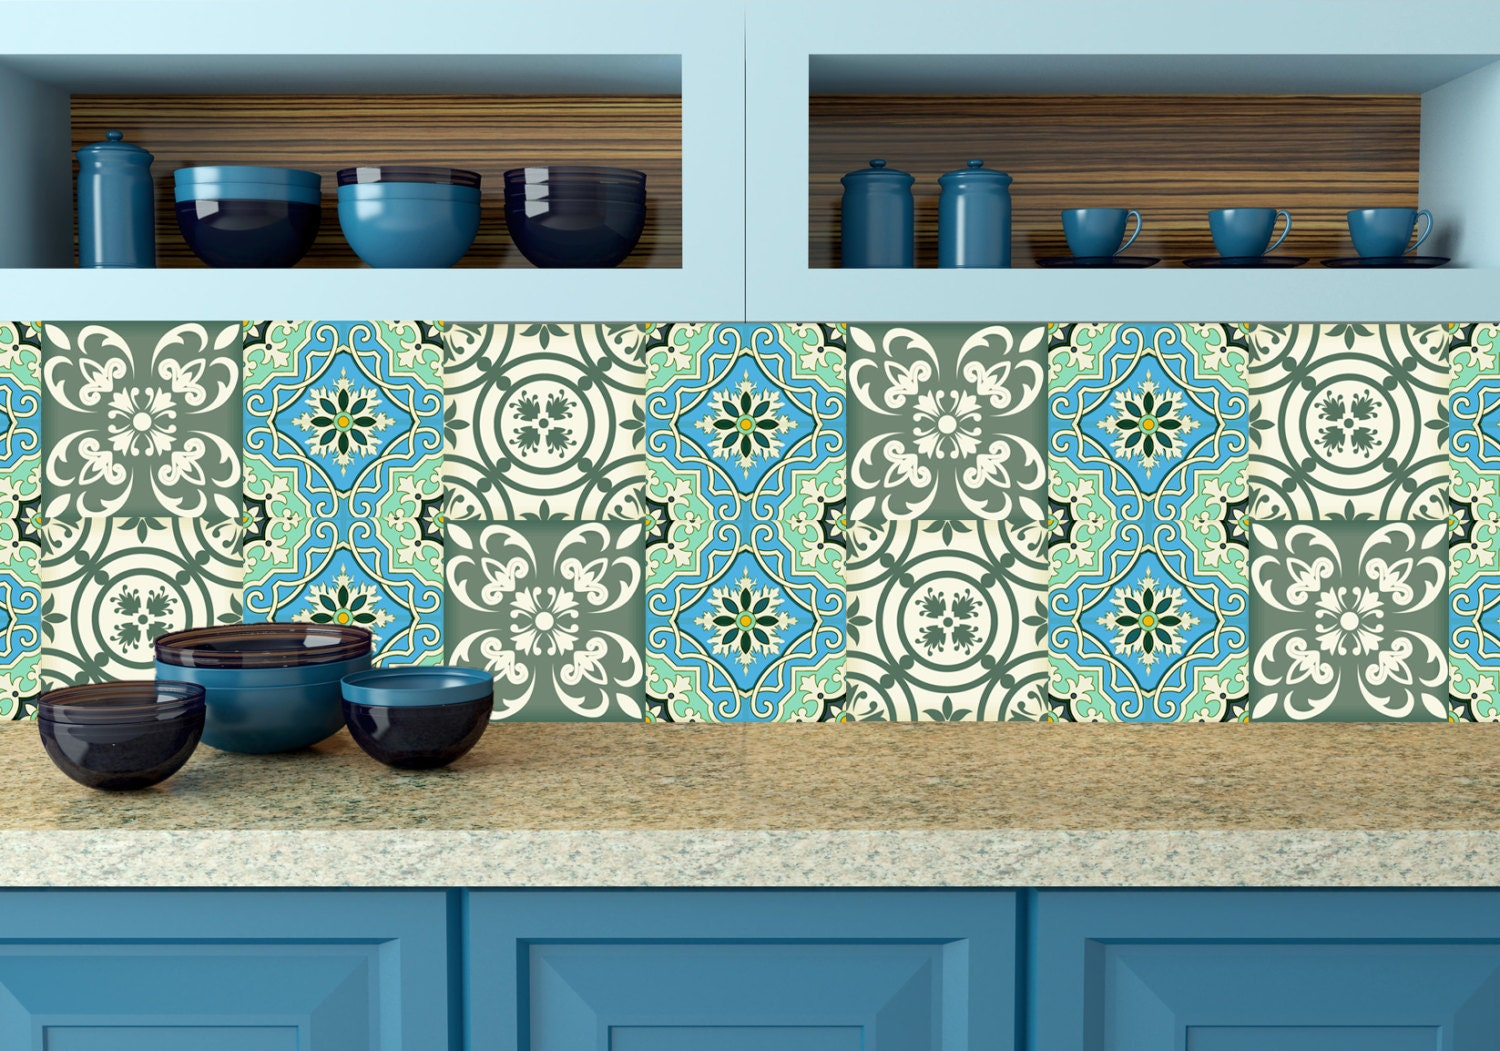 Https Www Etsy Com Listing 260241864 Tavalera Kitchen Tile Set Of 24 Tiles